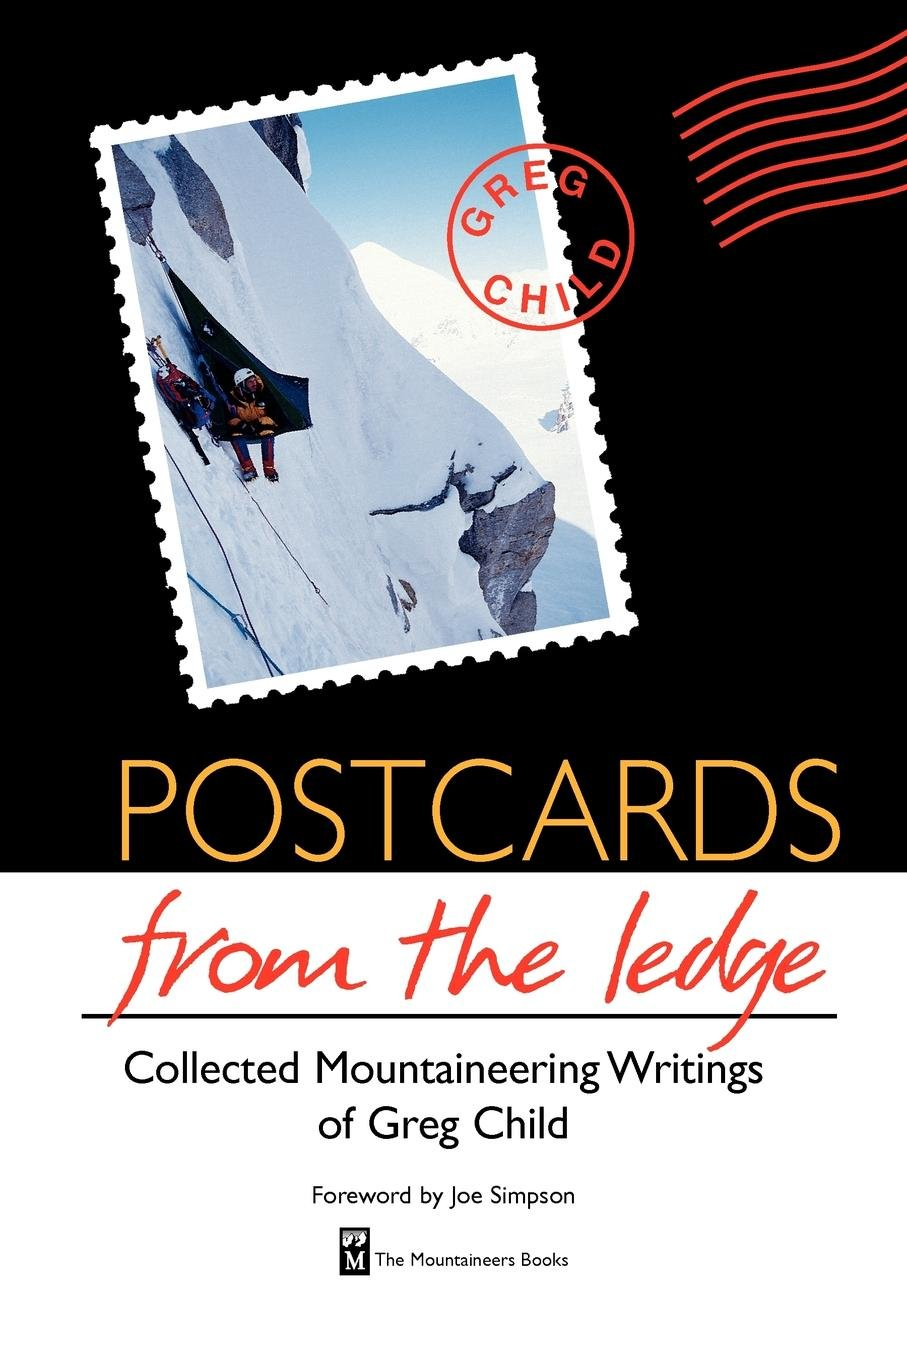 Postcards from the Ledge: The Collected Mountaineering Writings of Greg Child